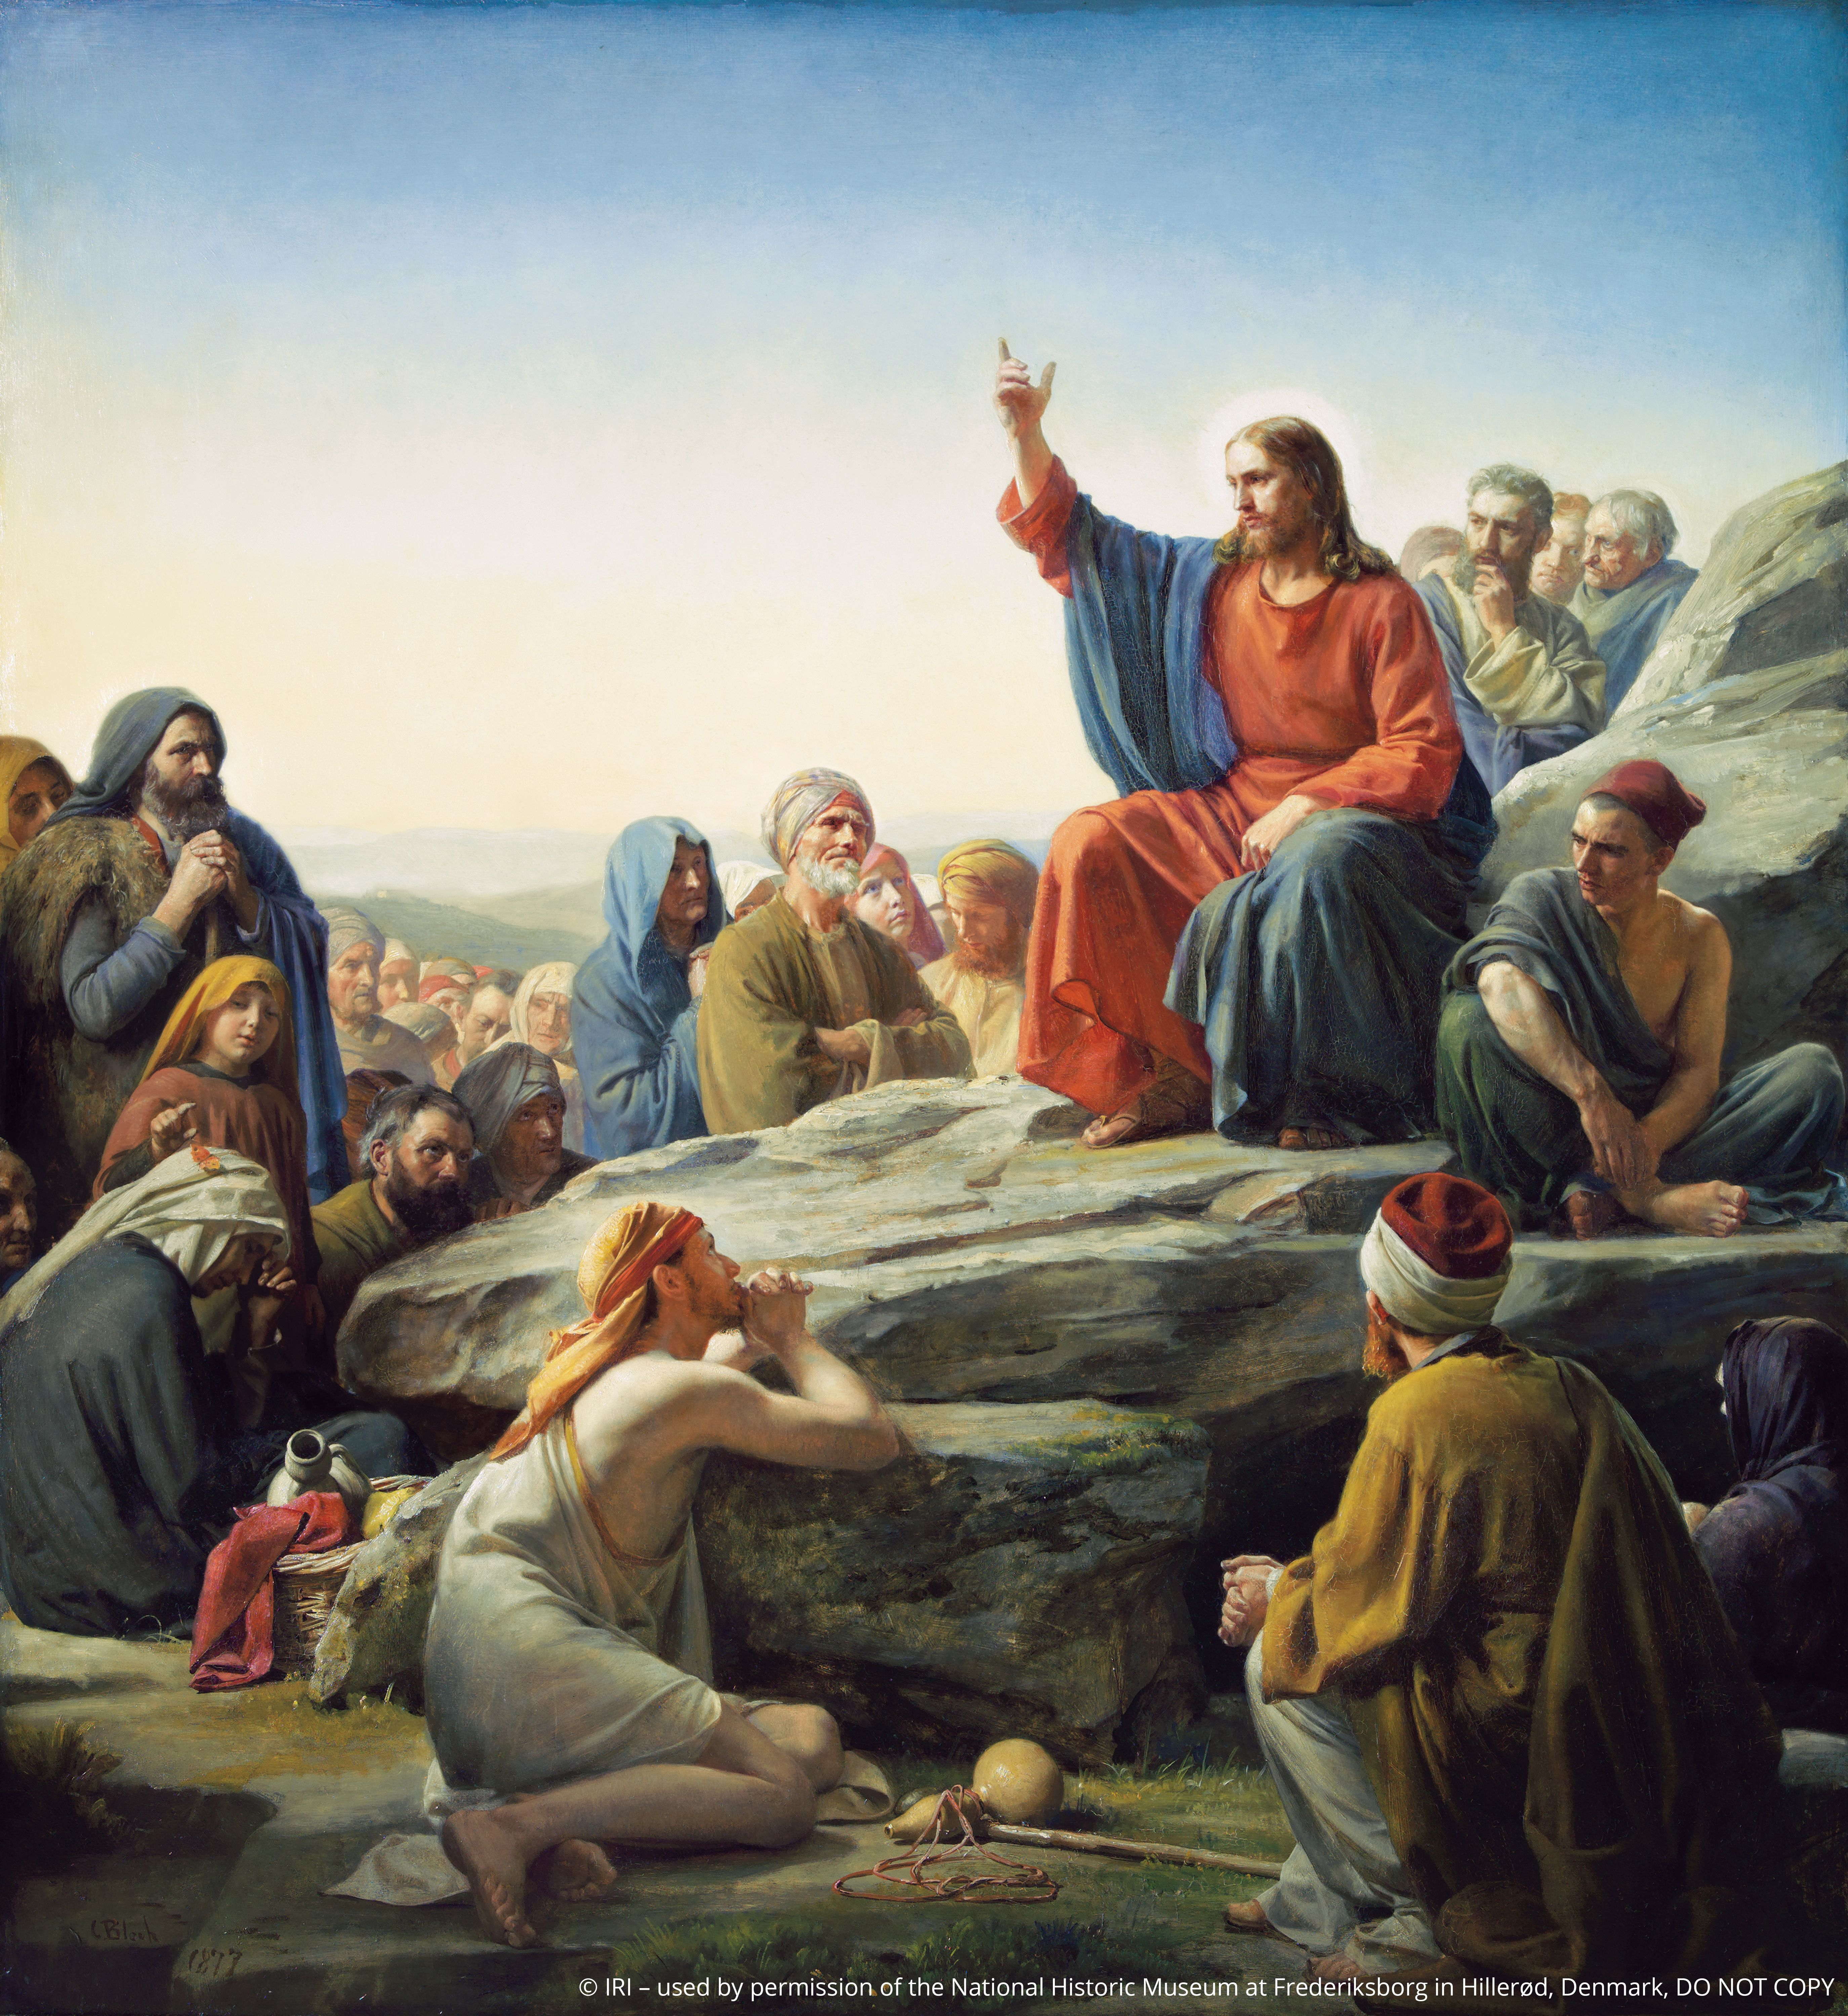 The Sermon on the Mount, by Carl Heinrich Bloch; GAB 39; Matthew 5–7; © IRI, used by permission of the National Historic Museum at Frederiksborg in Hillerød, Denmark. DO NOT COPY. This asset is for Church use and online viewing only.